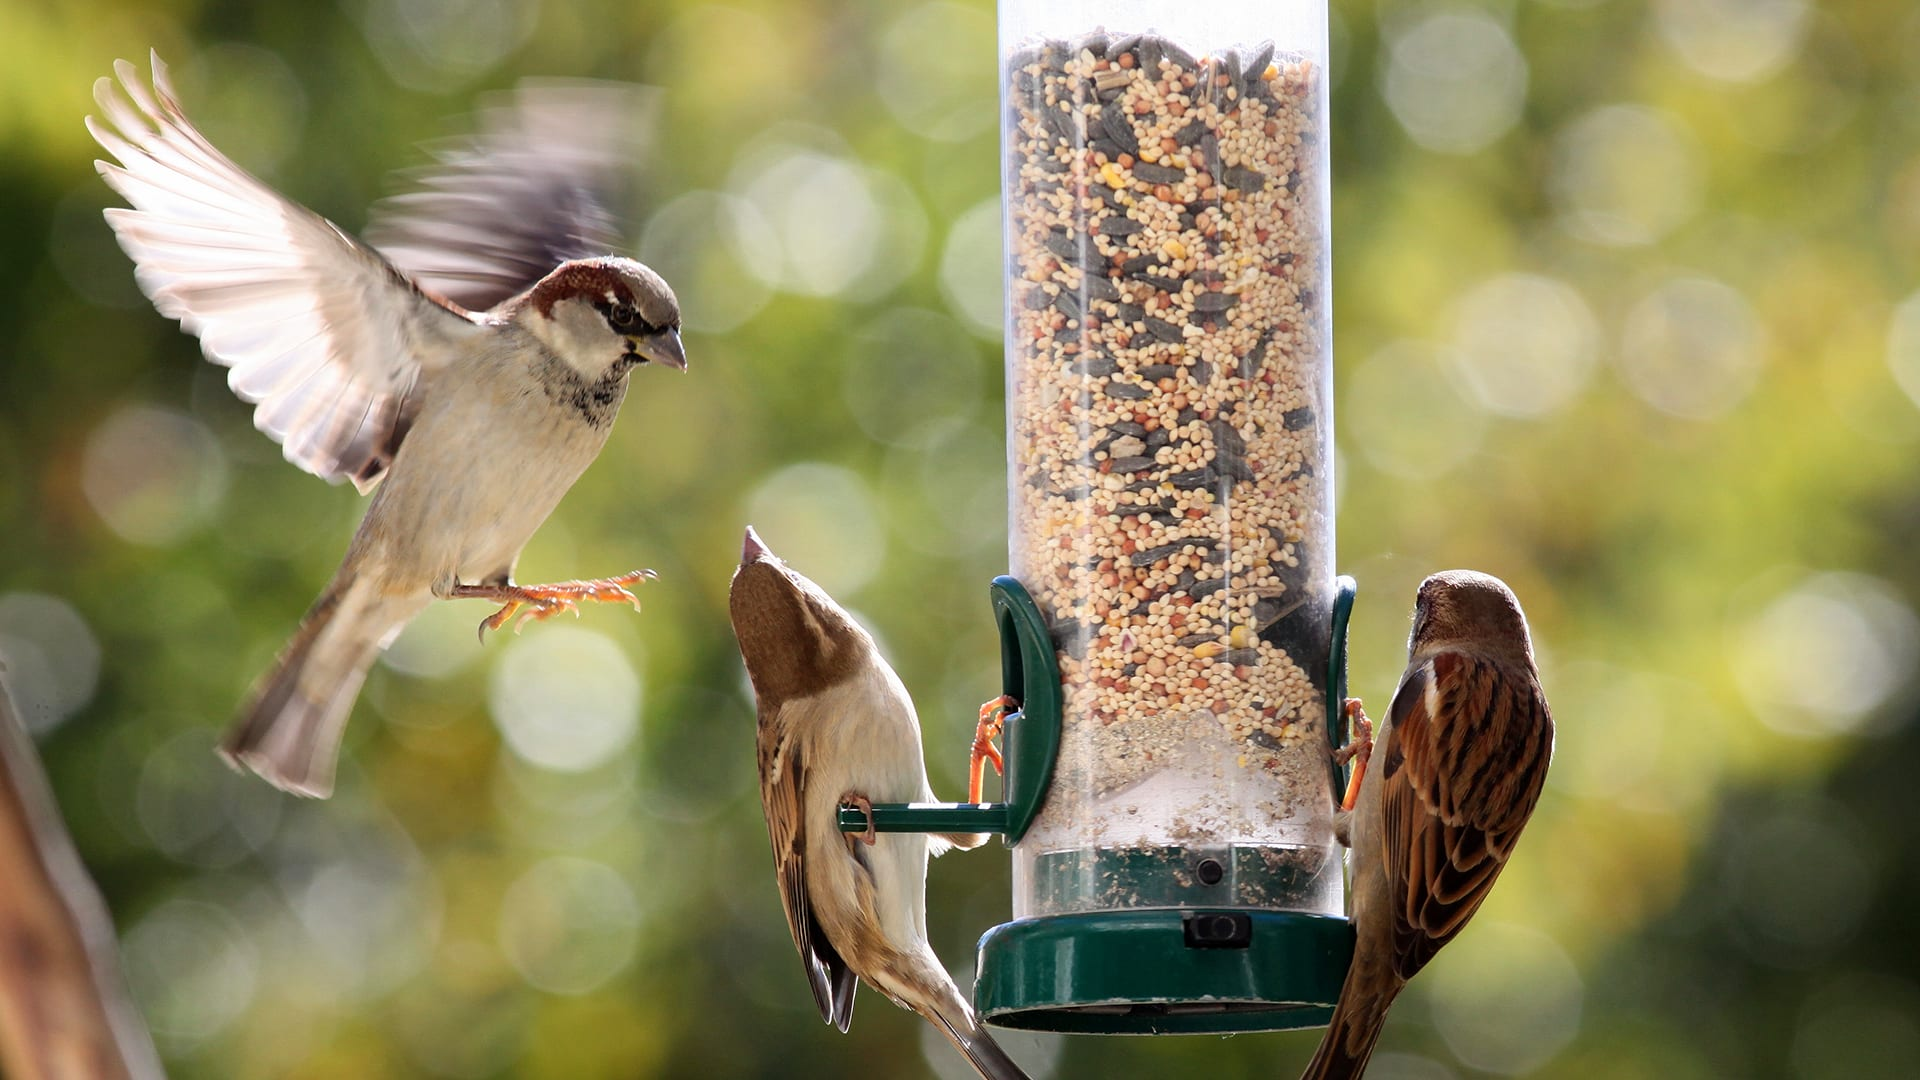 Can Birds Eat Human Food? Yes and No